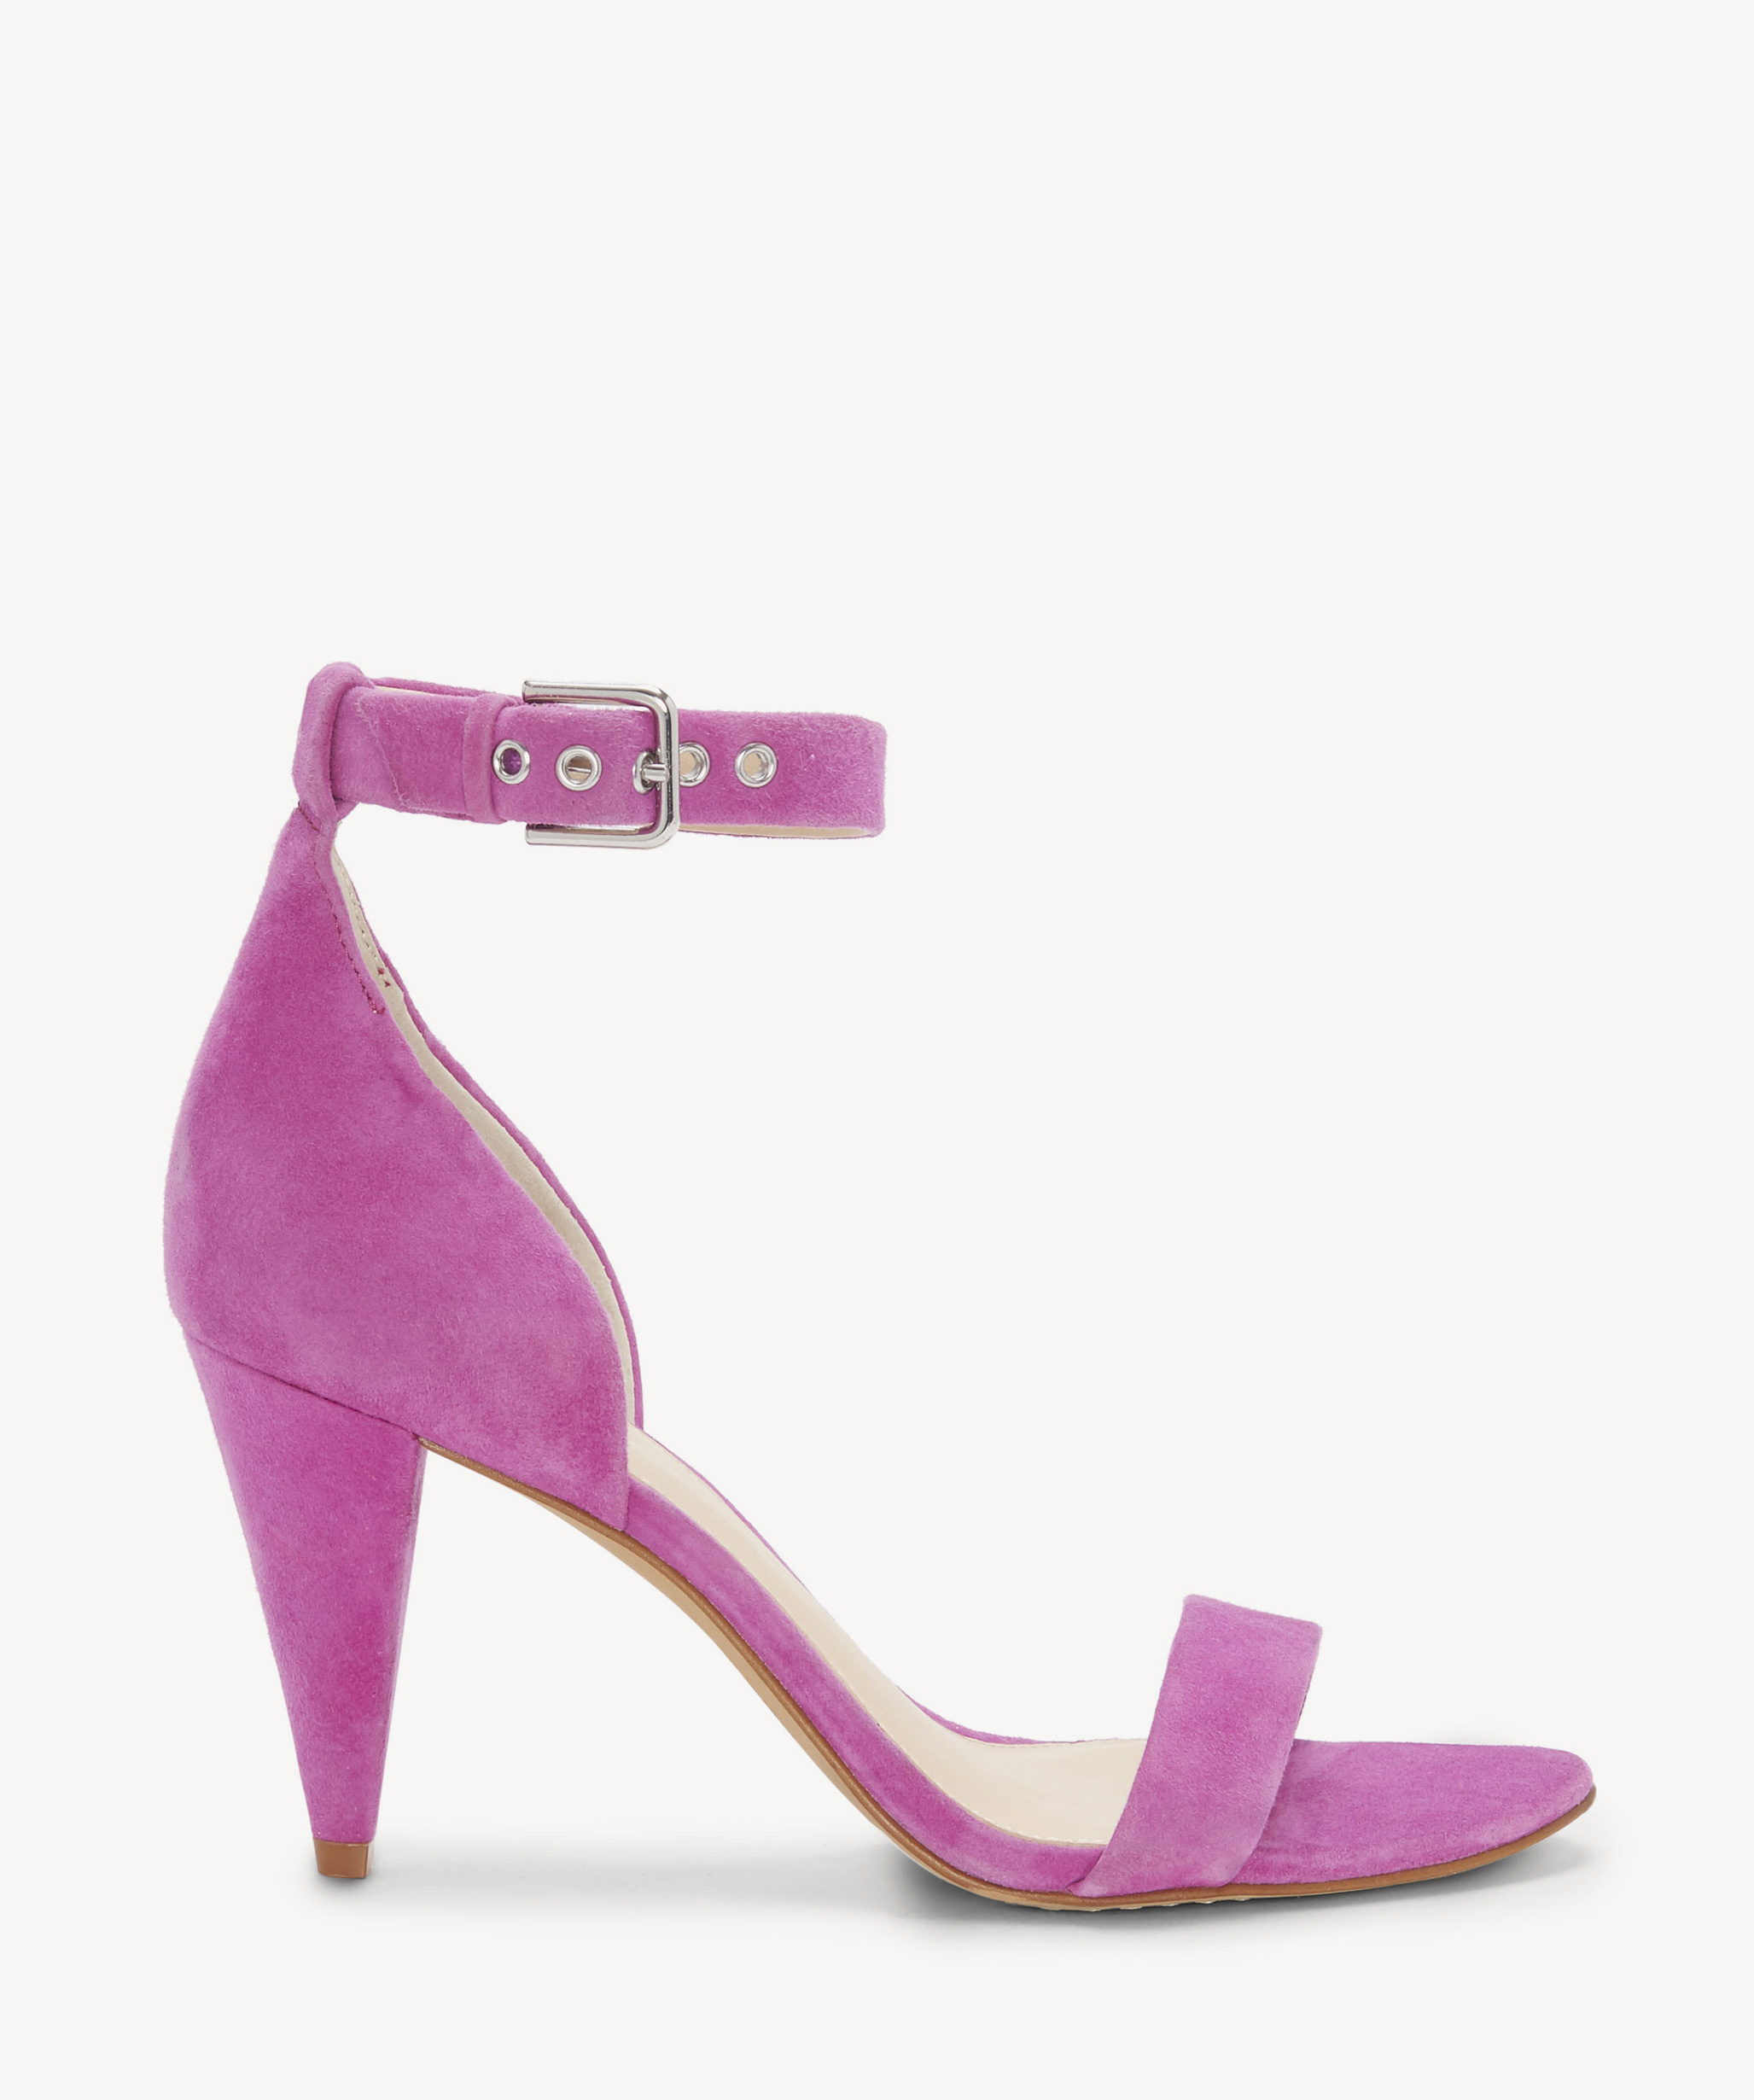 1a8c01fe2b5 Cashane | Products | Ankle strap sandals, Ankle strap, Vince camuto